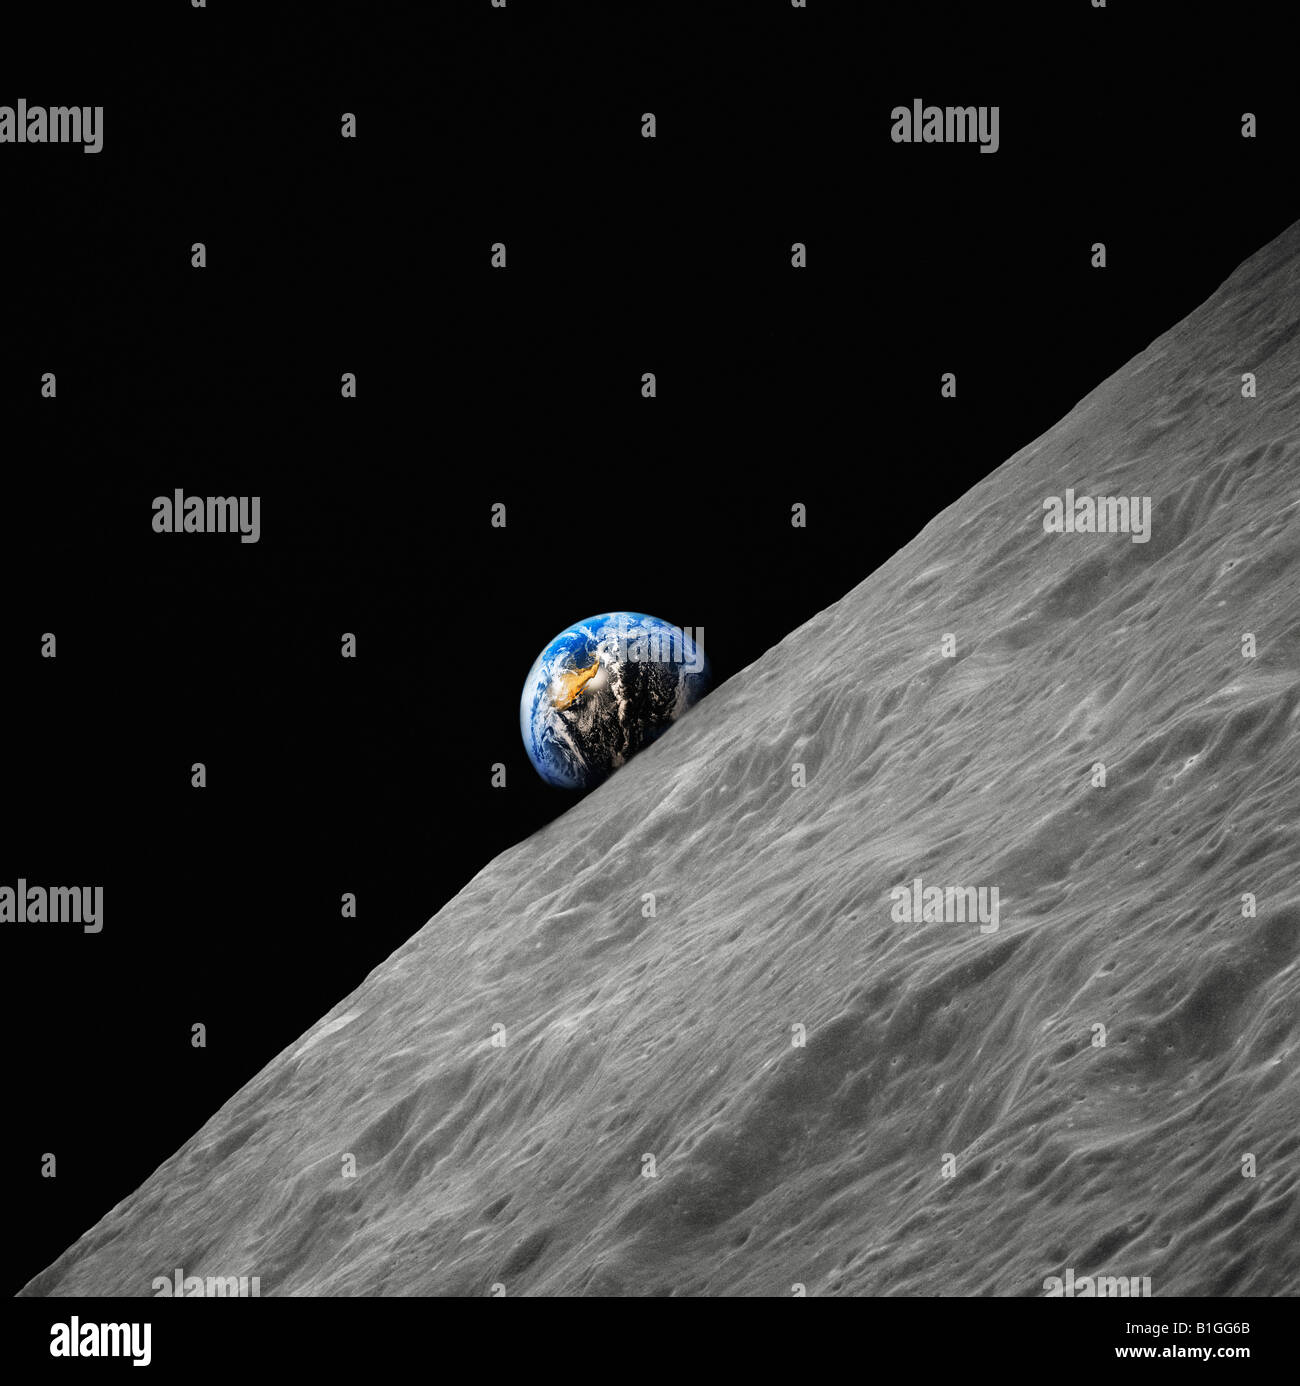 Earth rising above the surface of the moon Digital composite - Stock Image